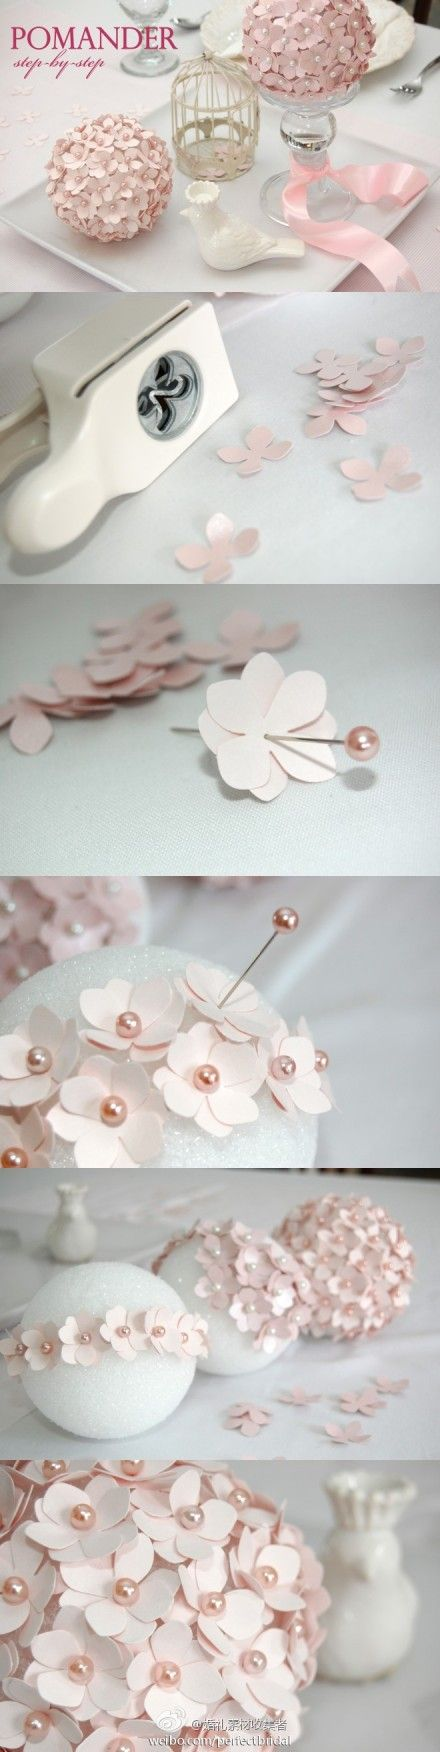 DIY paper pomander! cute looks like cherry blossoms